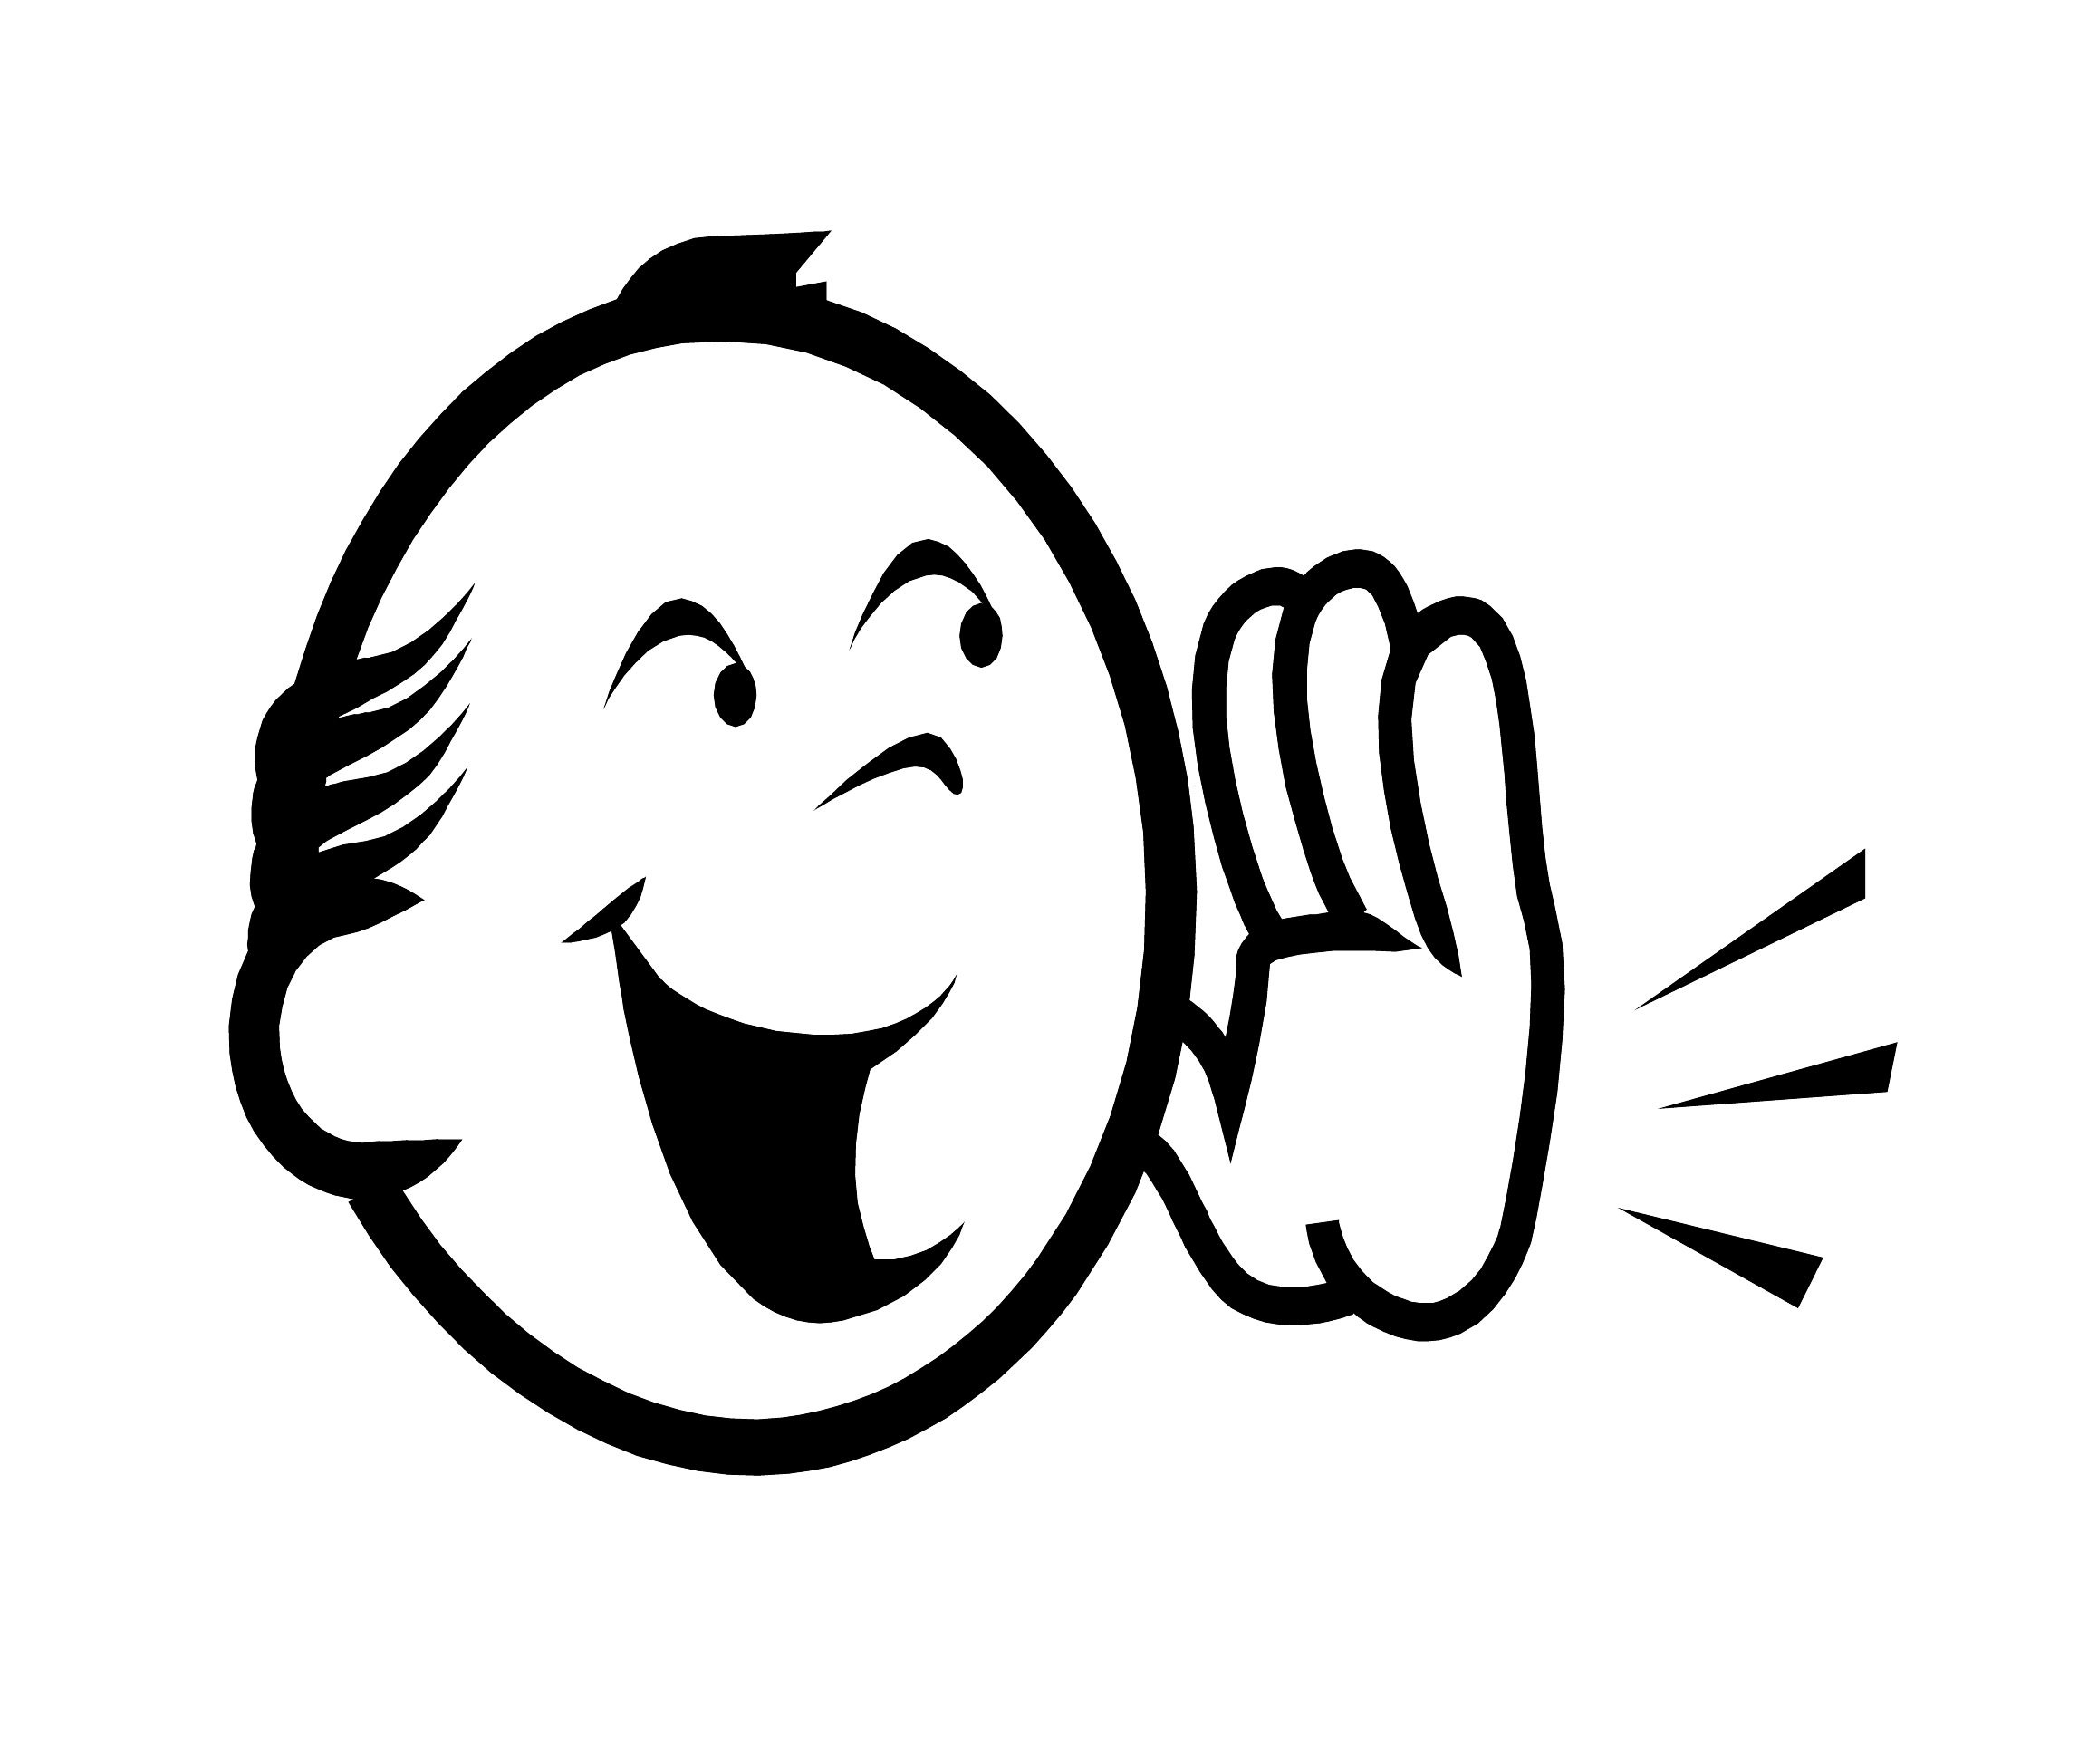 Yell clipart shout. Black and white letters